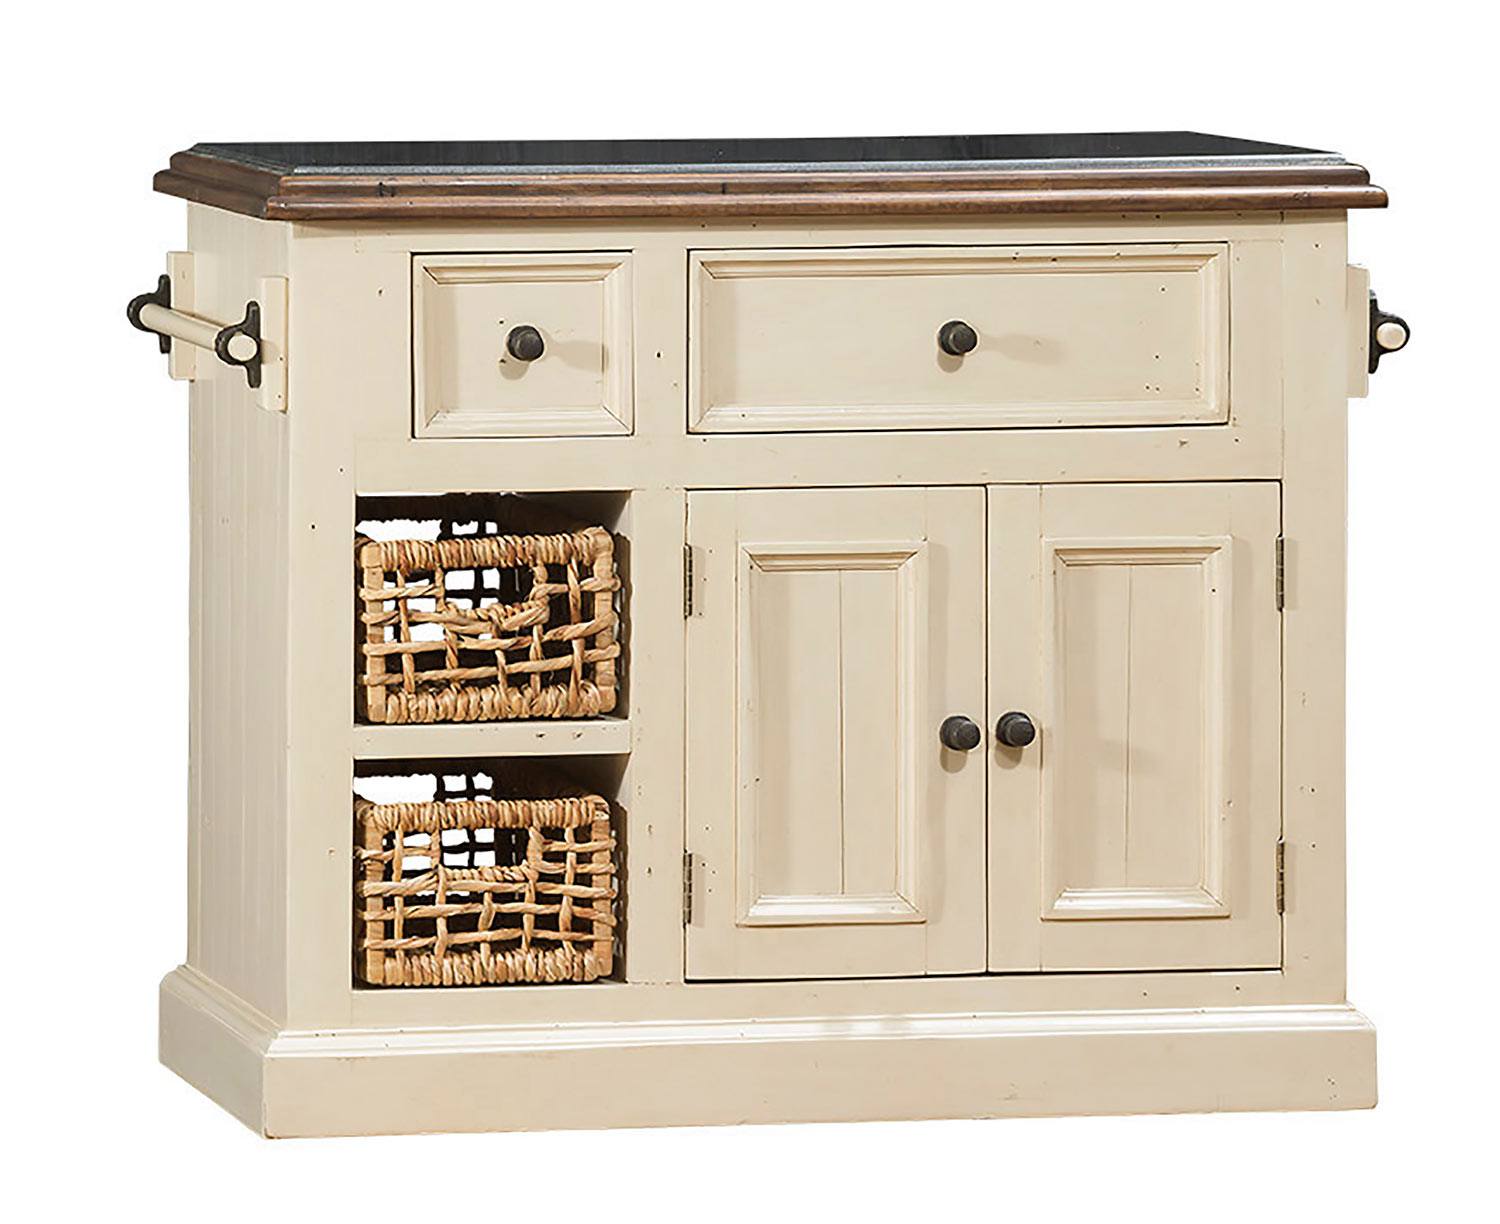 Hillsdale Tuscan Retreat Small Granite Top Kitchen Island with 2 Baskets - Country White